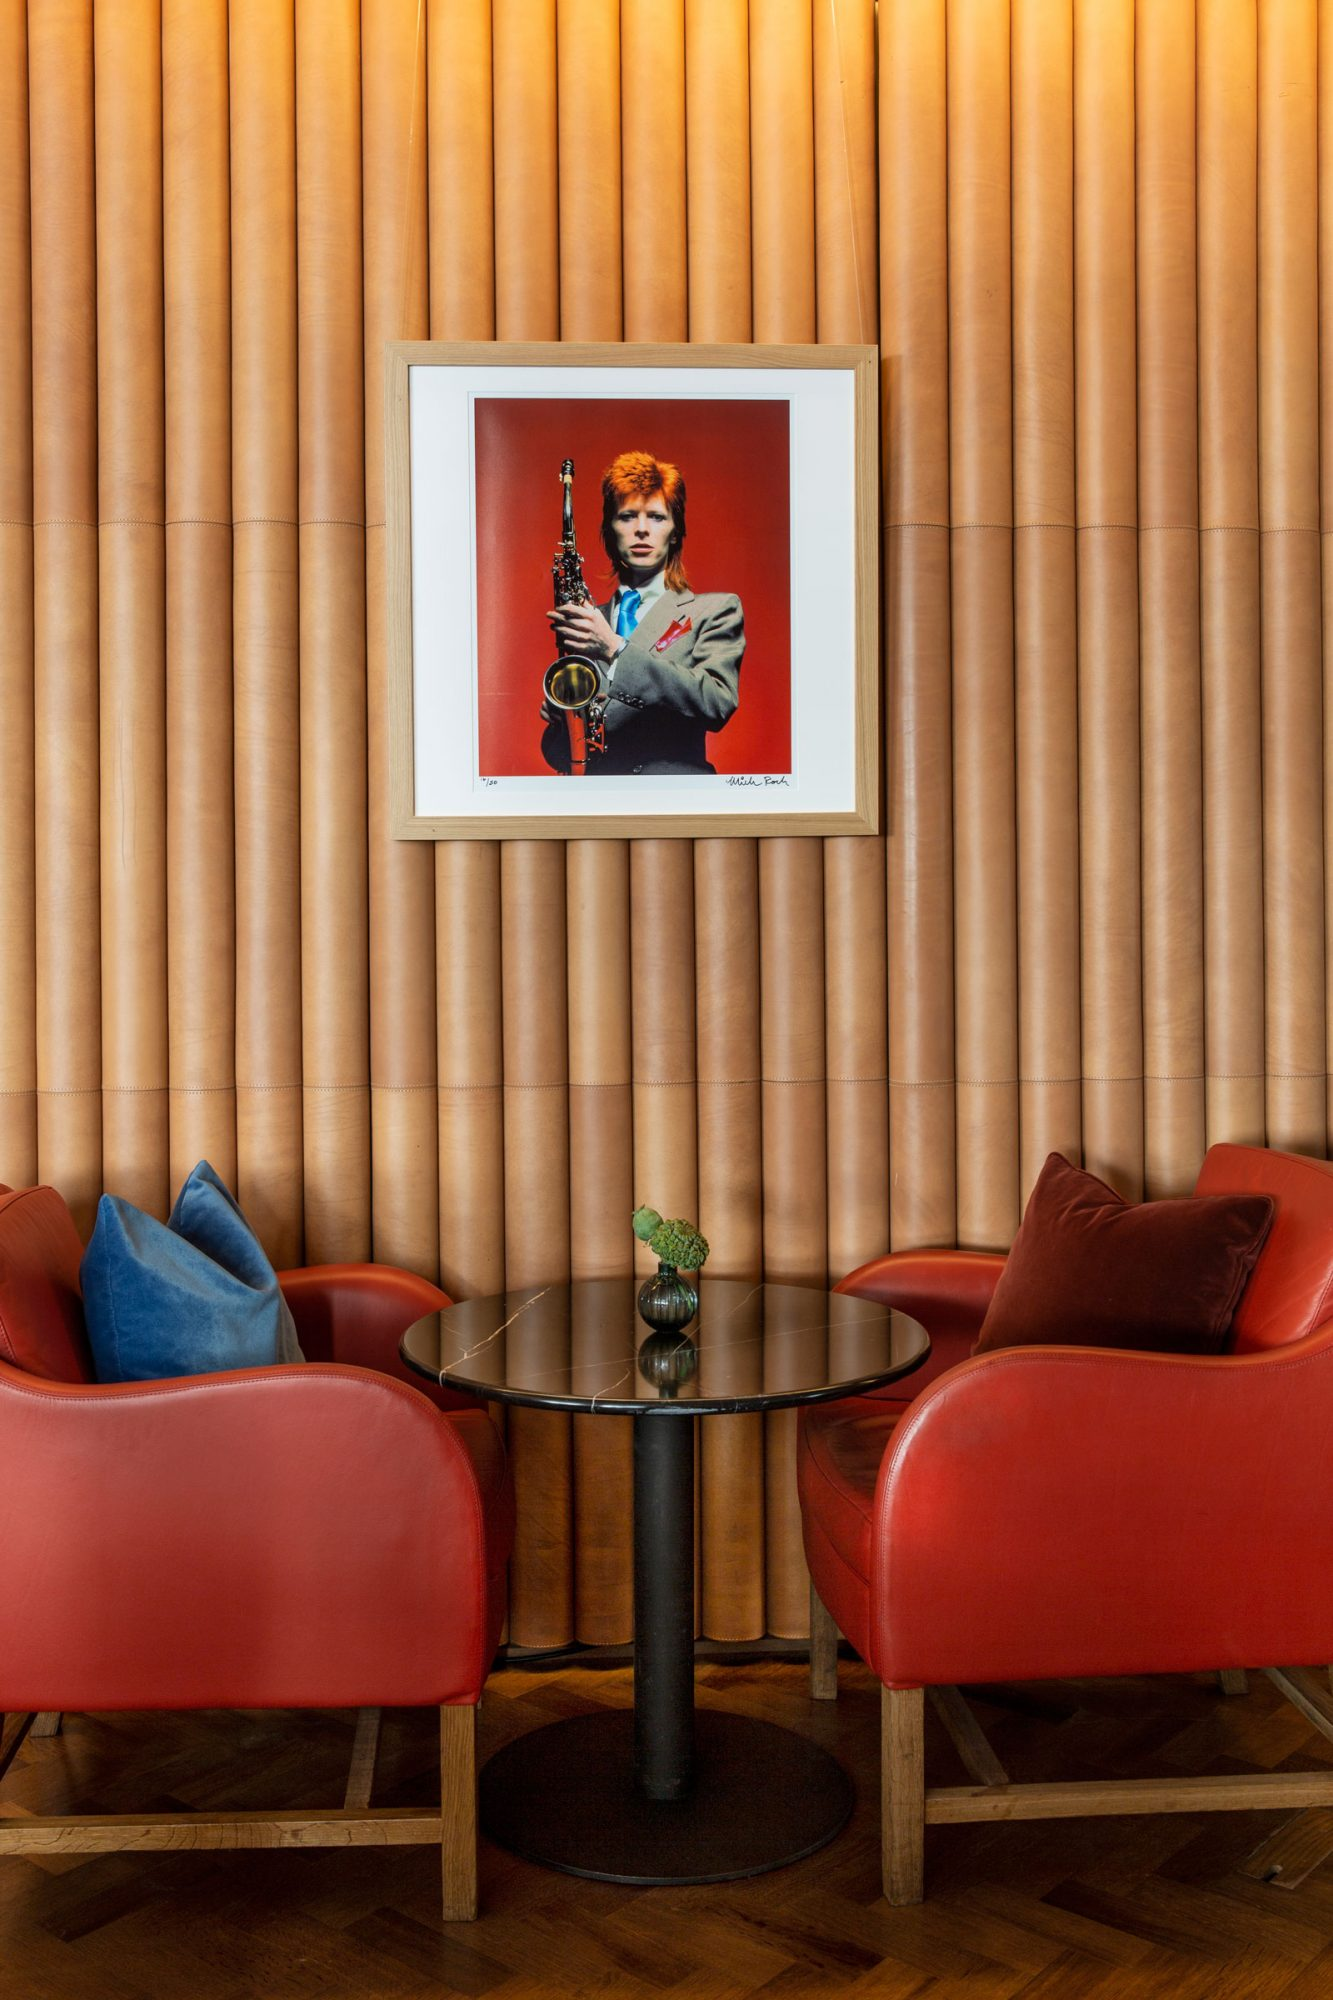 David Bowie Ziggy Stardust Bar Interior XL BLOG0818.